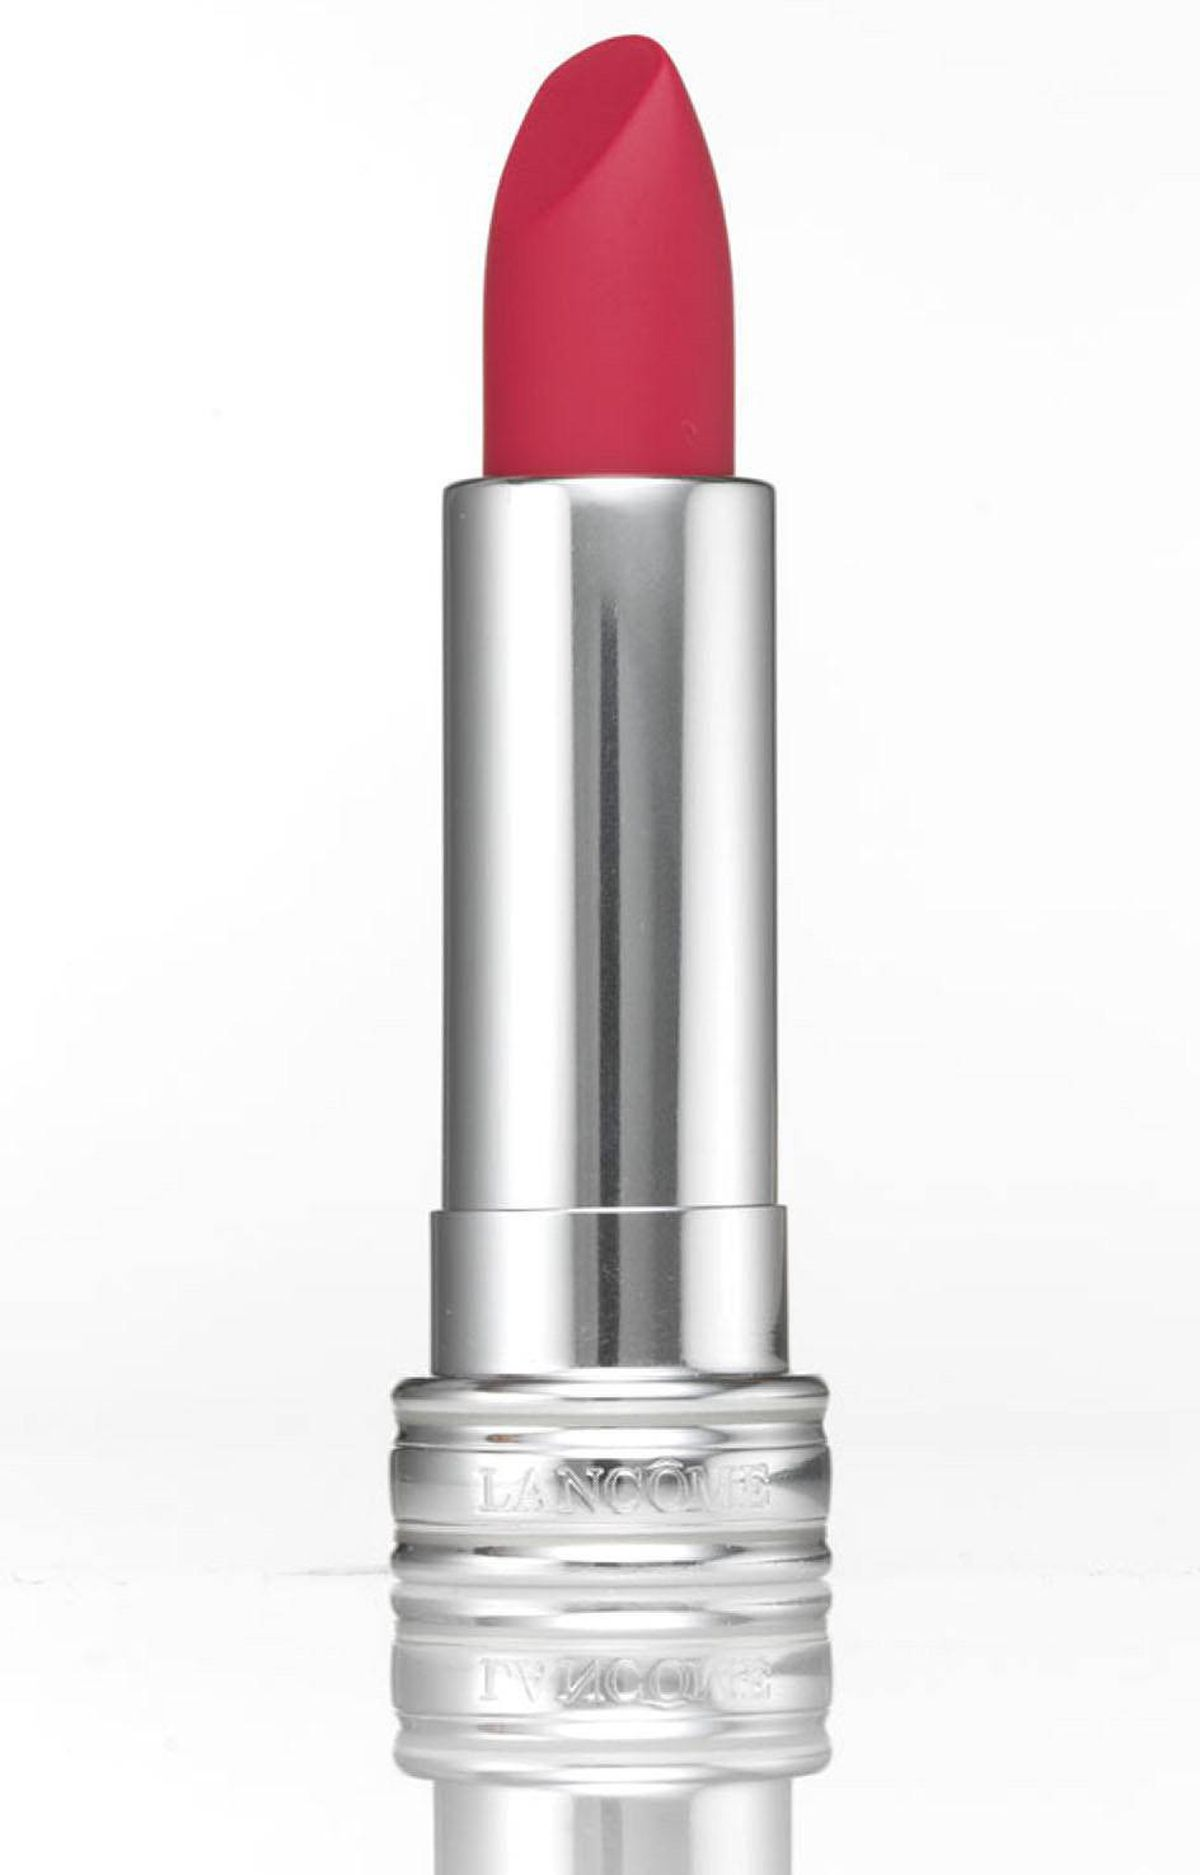 Rouge in Love lipstick in Rose des Soupirants by Lancôme, $30 through www.lancome.ca.